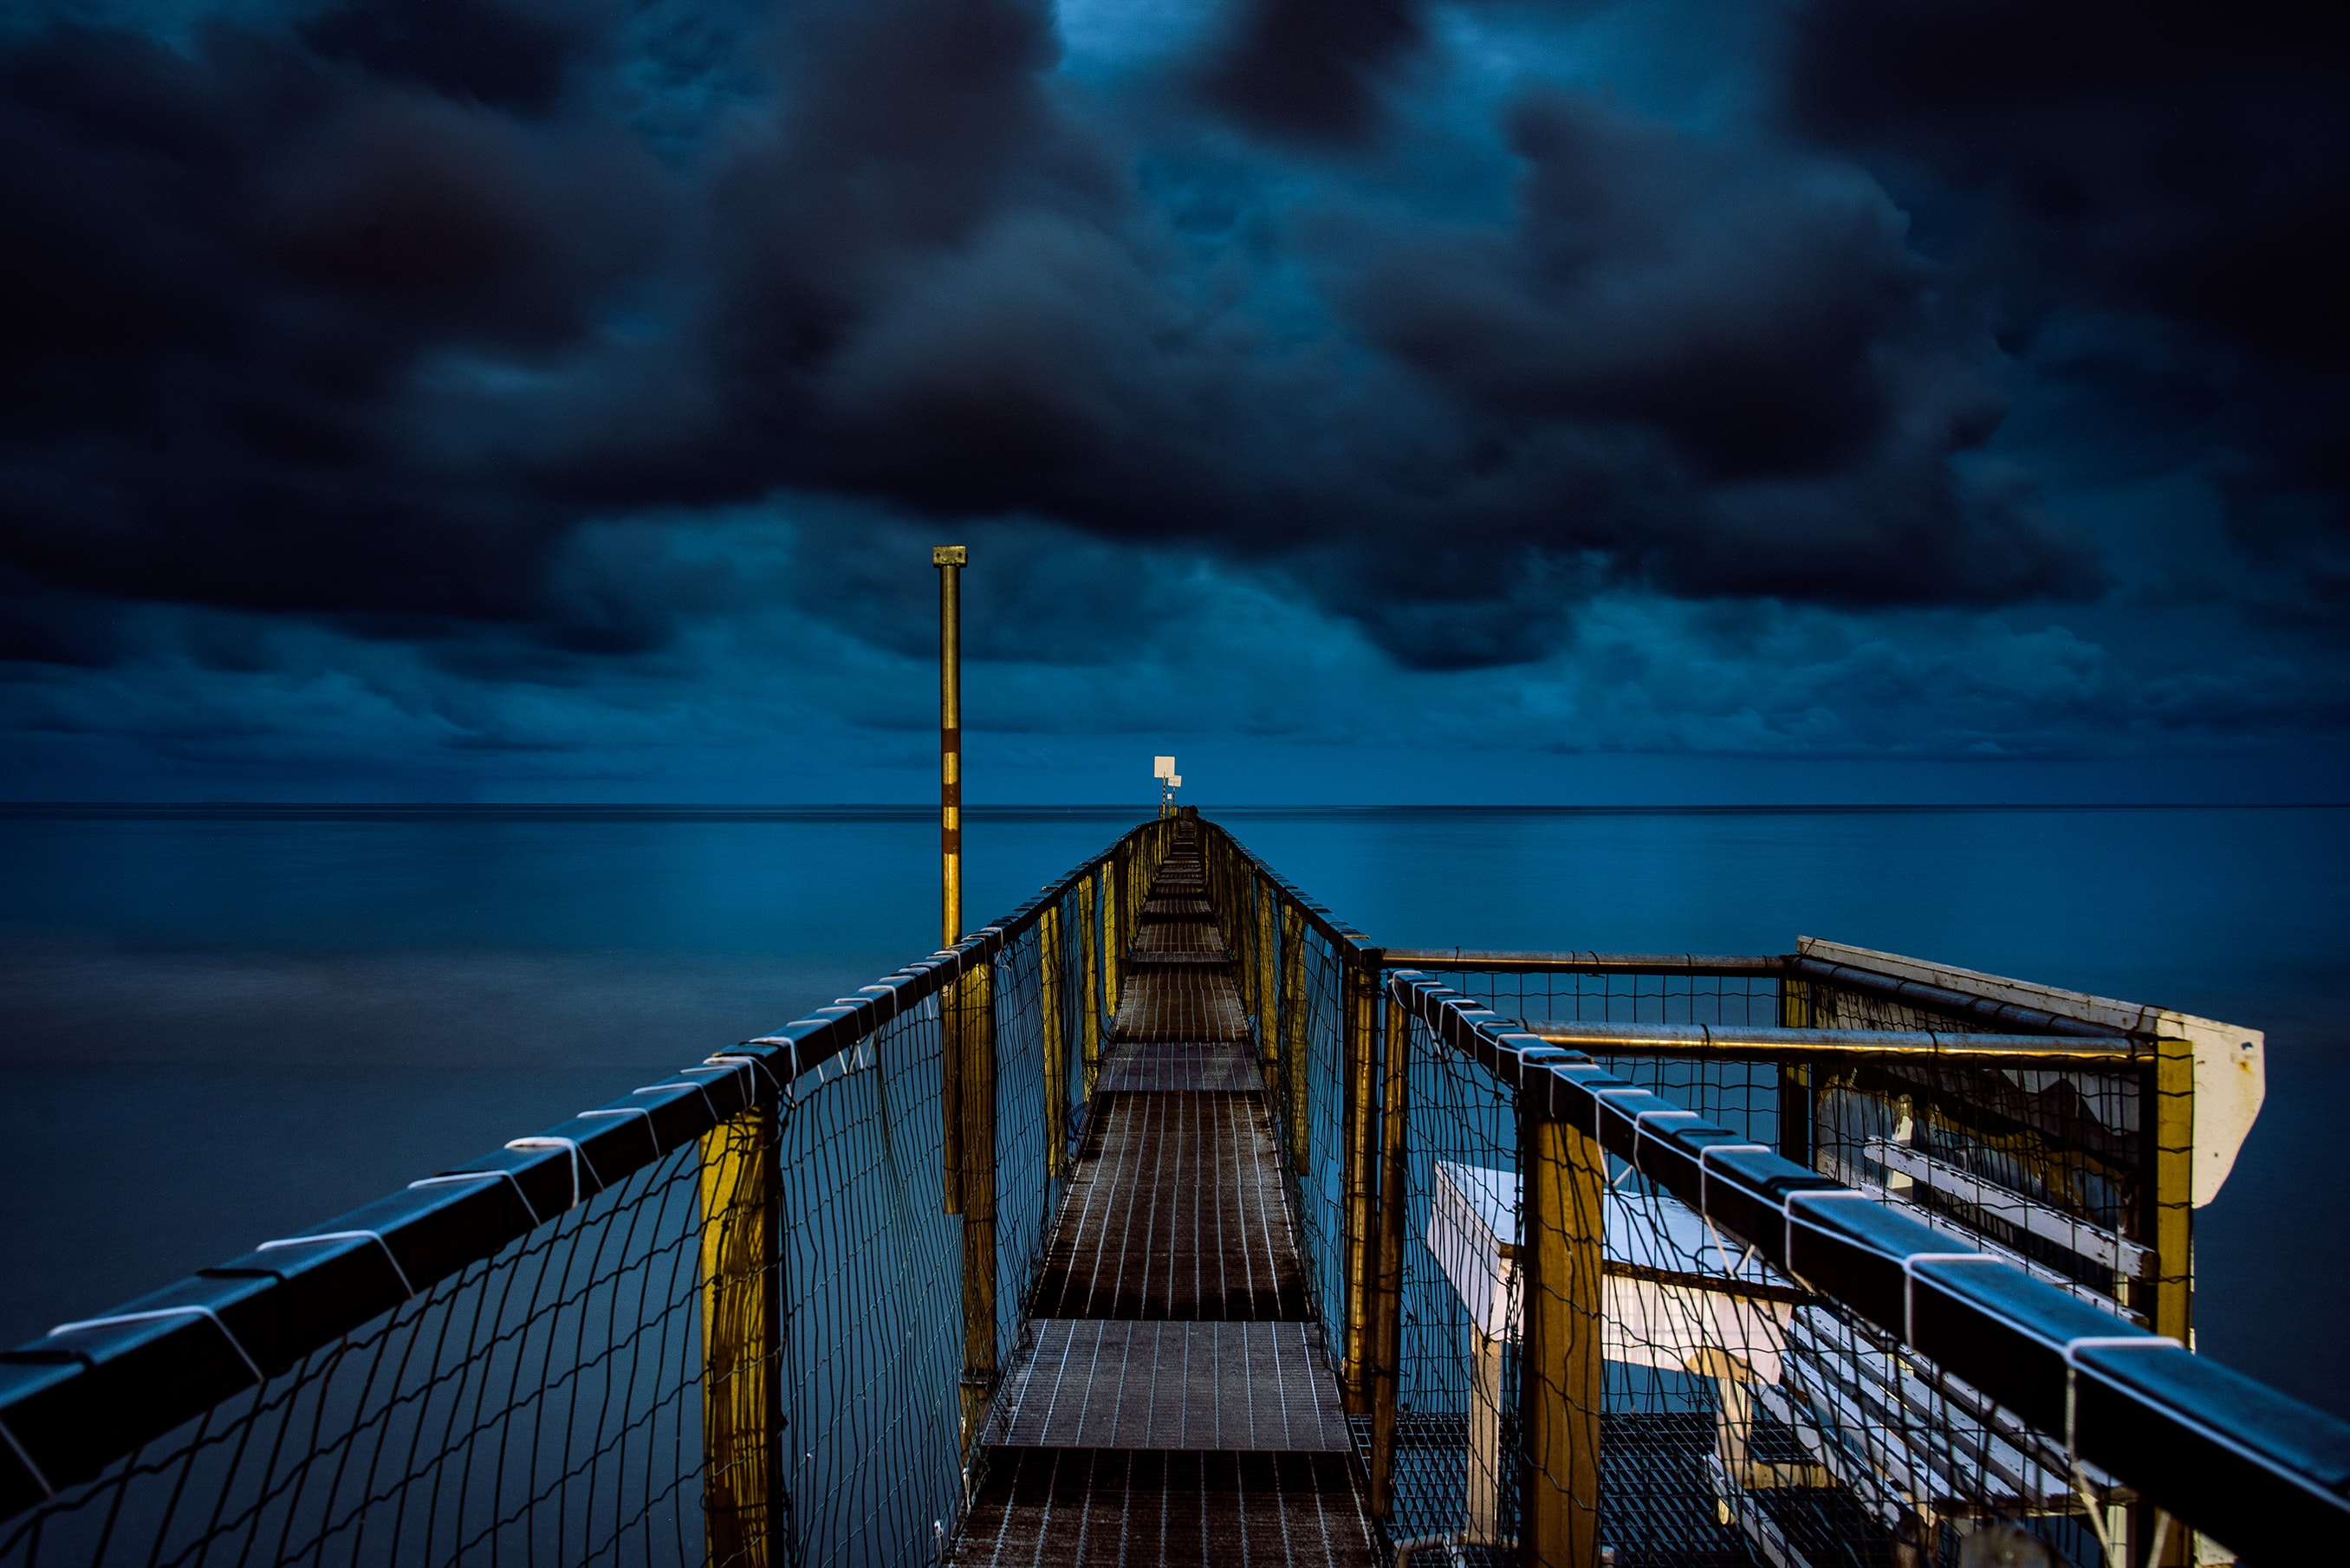 A dock that is lit up at night time over calm water in Rimini